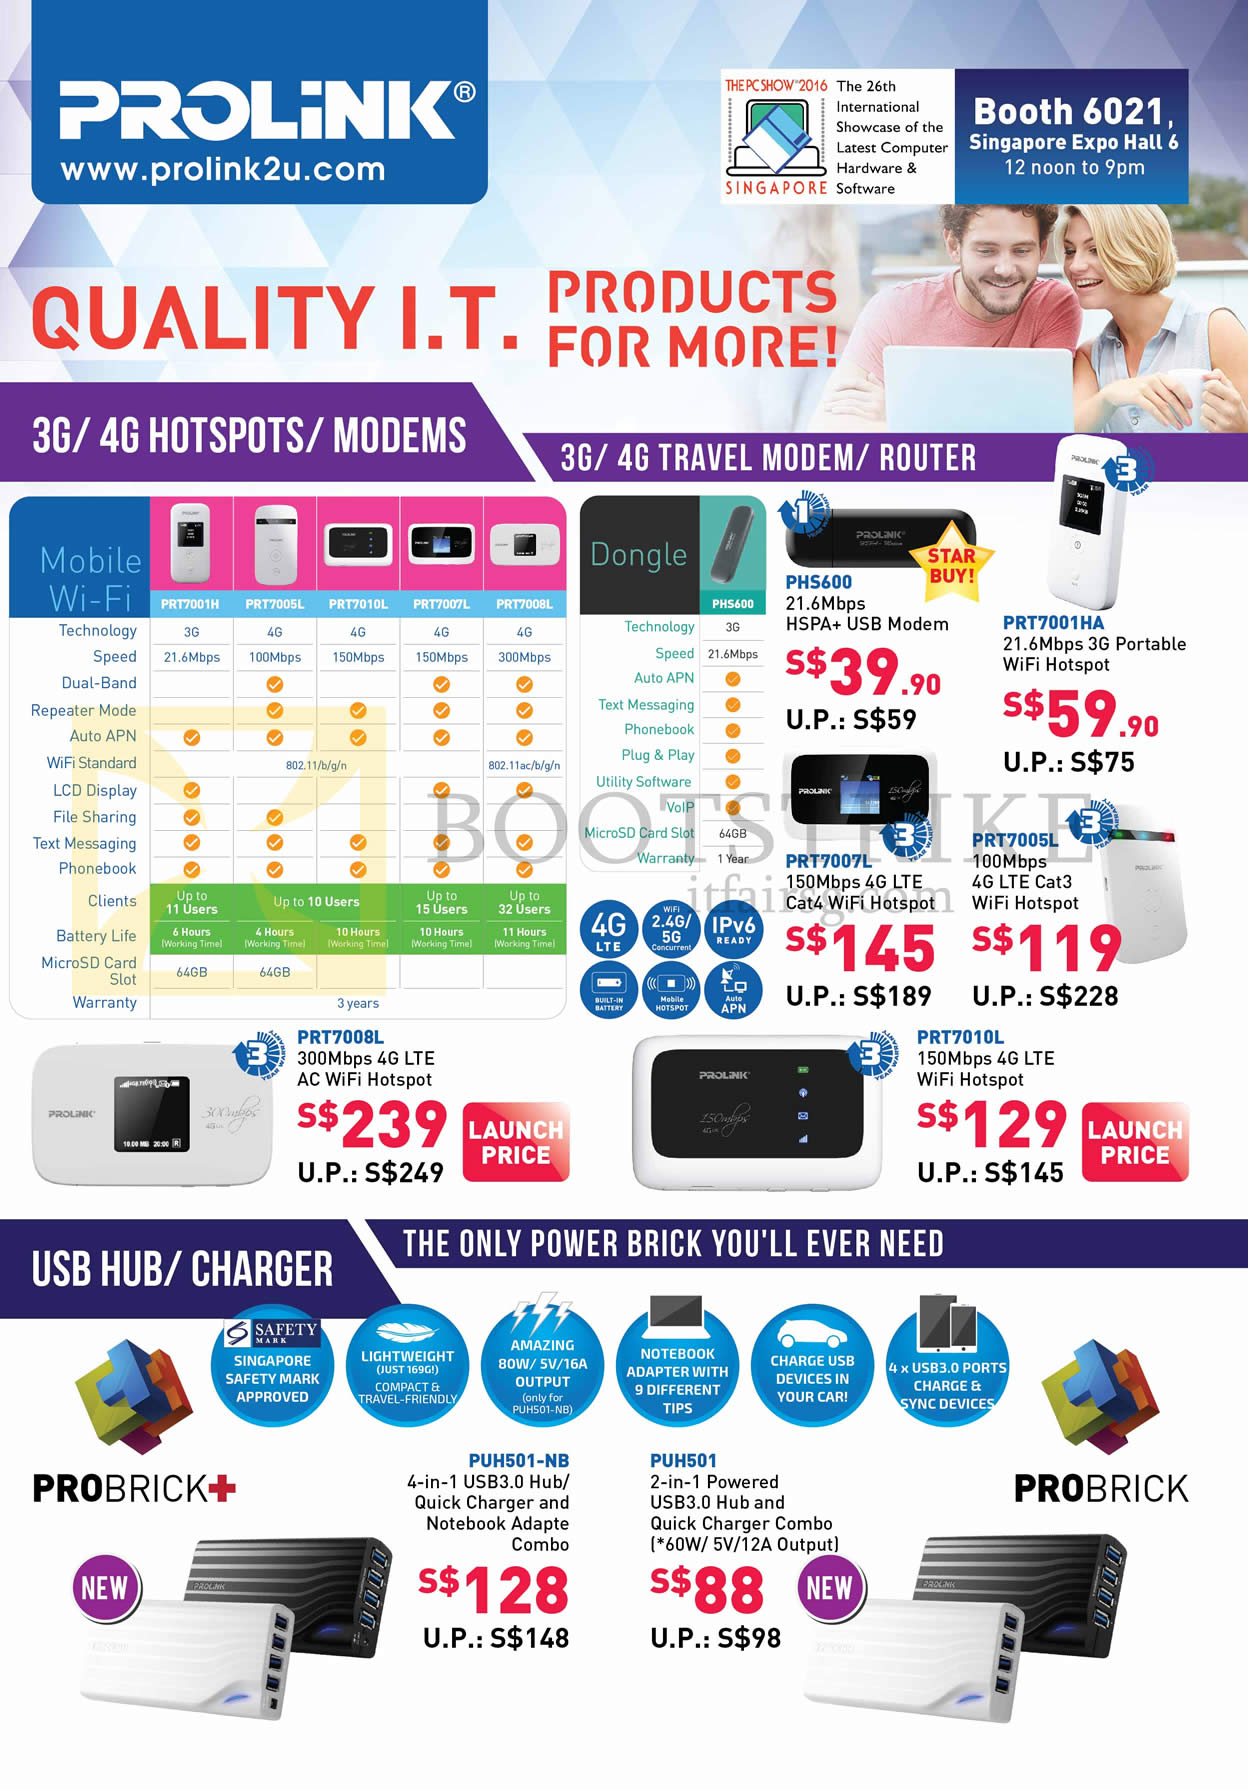 PC SHOW 2016 price list image brochure of Prolink 3G, 4G Hotspots, Modems, USB Hubs, Charger, Travel Modem, Router, PHS600, PRT7001HA, 7007L, 7005L, 7010L, PUH501-NB, 501